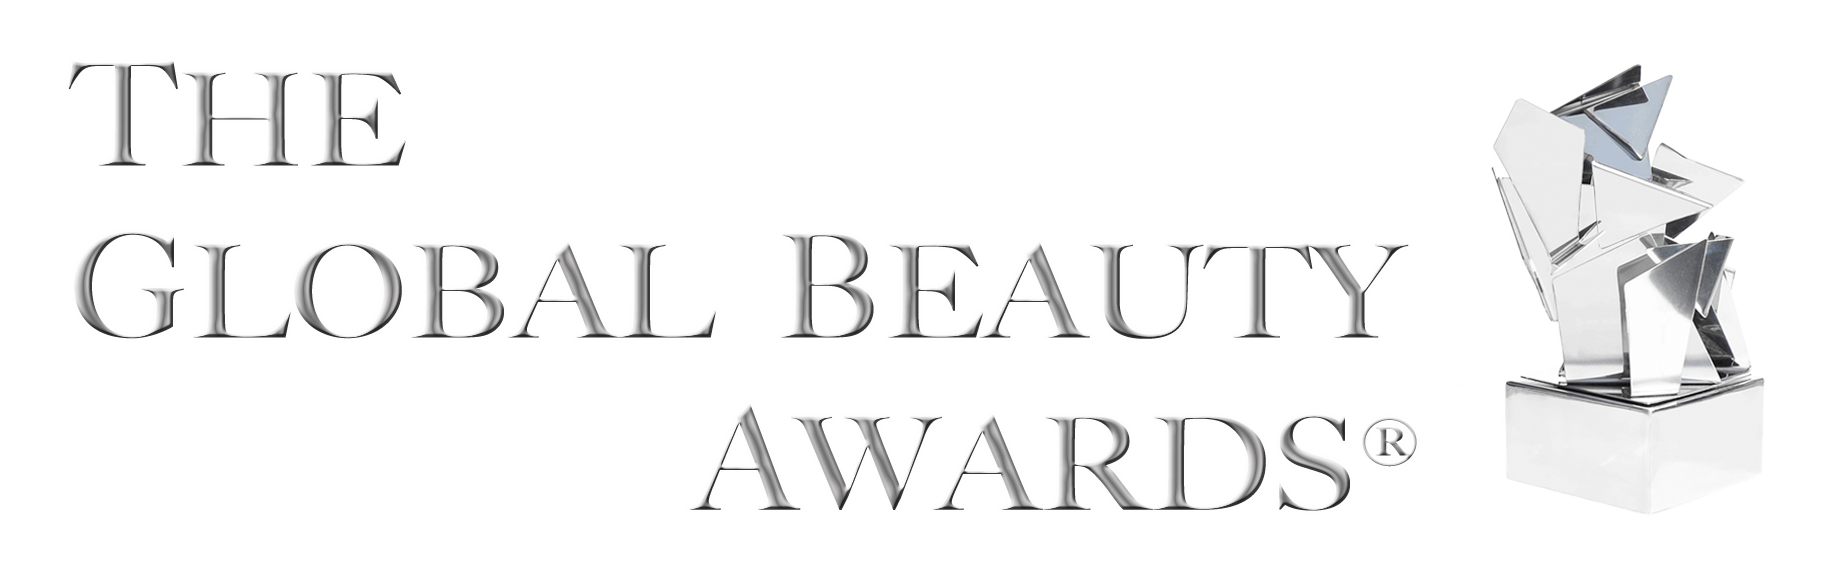 THE GLOBAL BEAUTY AWARDS Logo